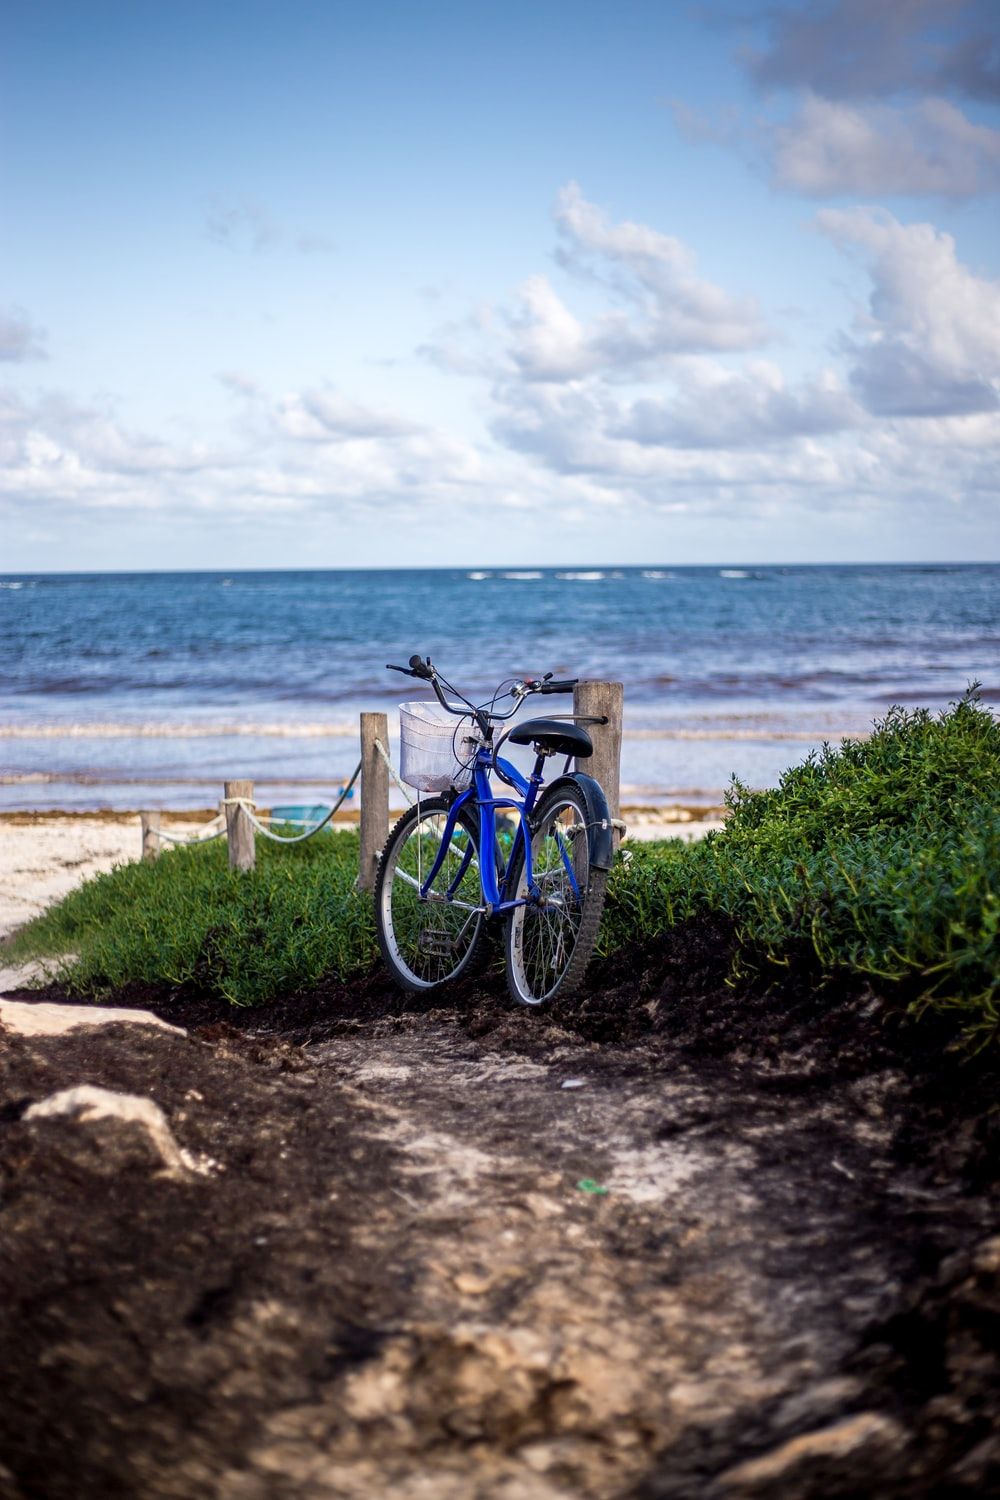 blue bicycle on seashore under cloudy sky